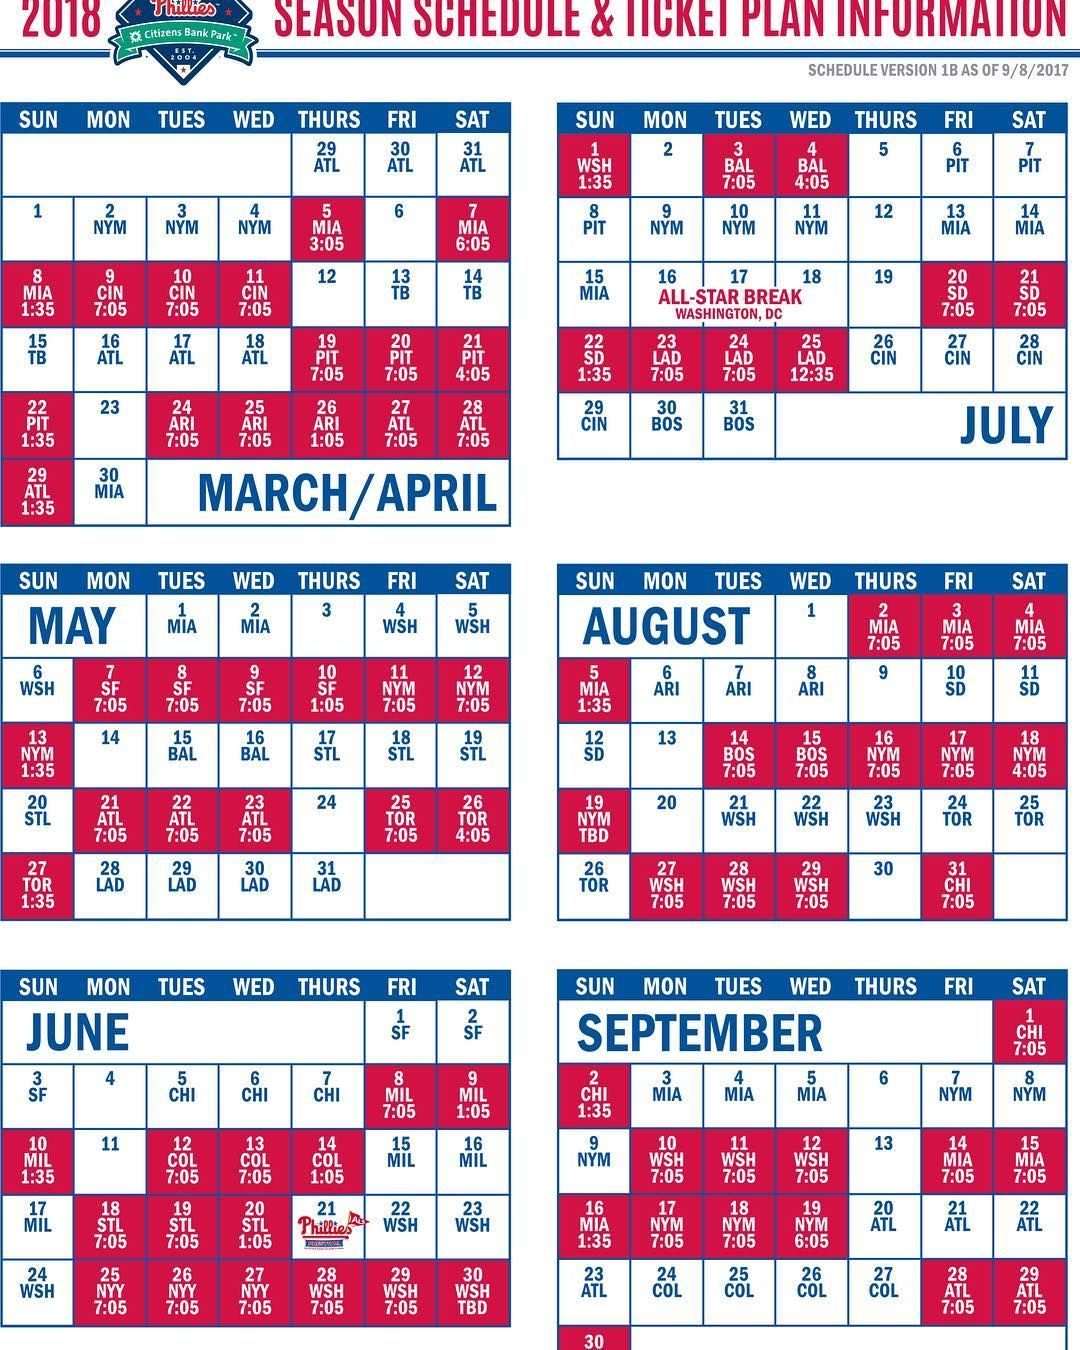 30 Days Baseball Fans Heres The Complete 2018 Season Schedule For The Philadelphiaphillies The Young Phillies Phillies Schedule Phillies Mlb Baseball Teams